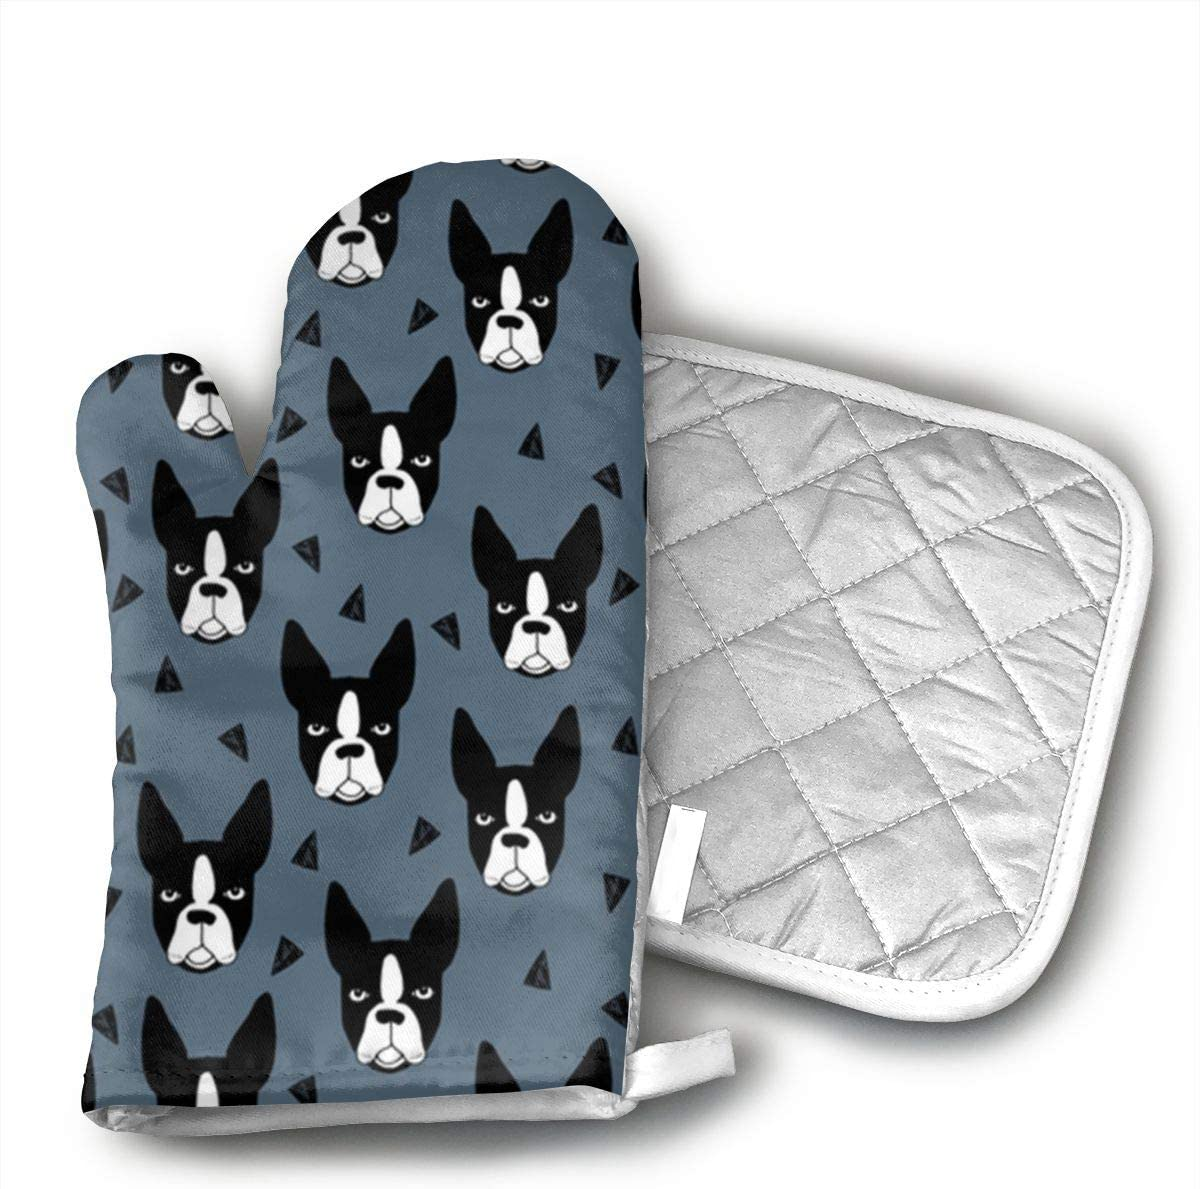 JFNNRUOP Boston Terrier Oven Mitts,with Potholders Oven Gloves,Insulated Quilted Cotton Potholders